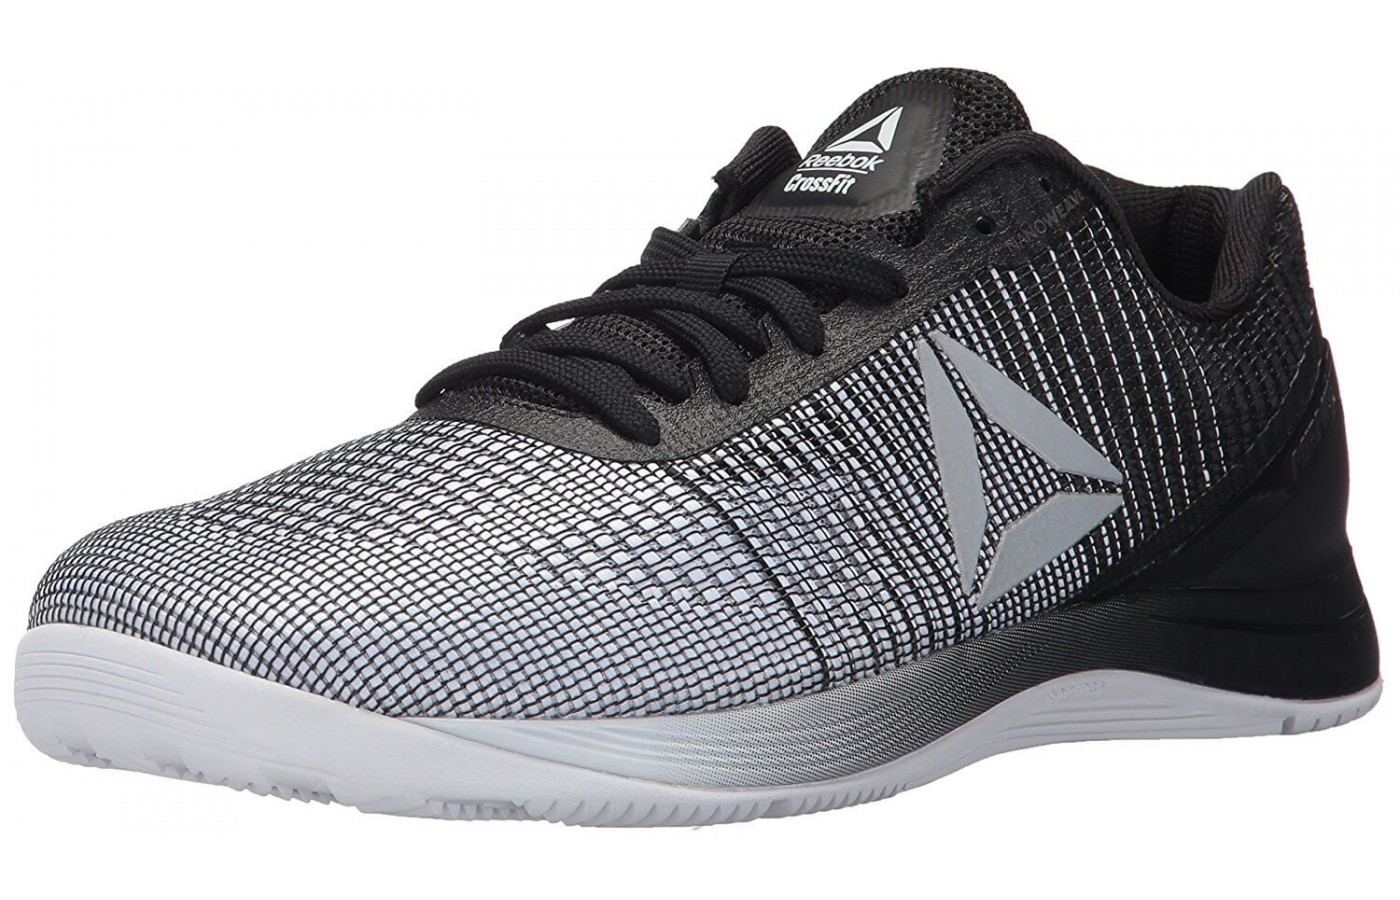 60ee16ed600d The Reebok Crossfit Nano 7 Weave was designed to fix mistakes in the  original design.